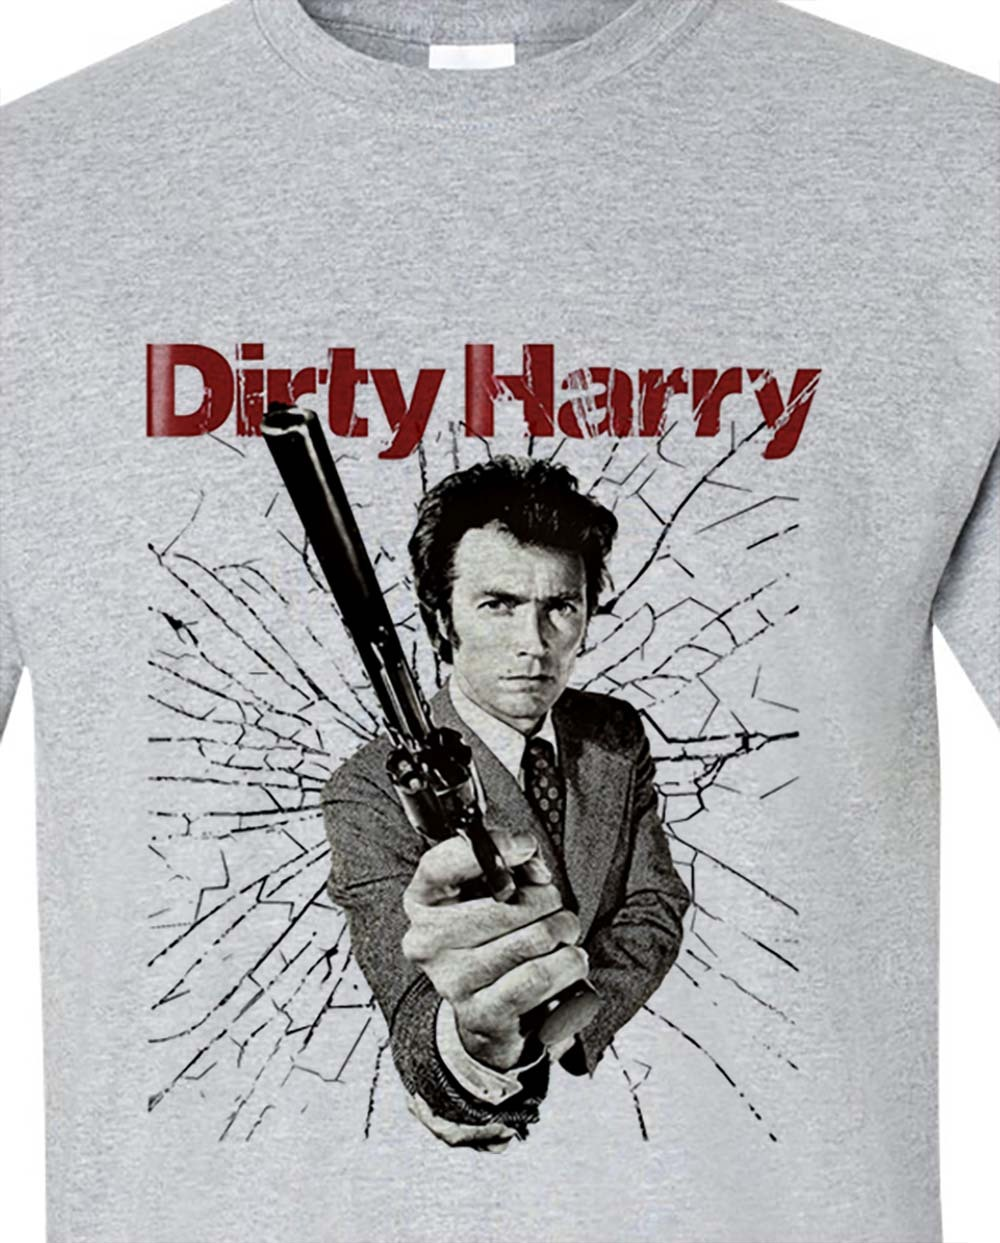 Dirty harry clint eastwood t shirt retro vintage movie graphic tee for sale online gray store